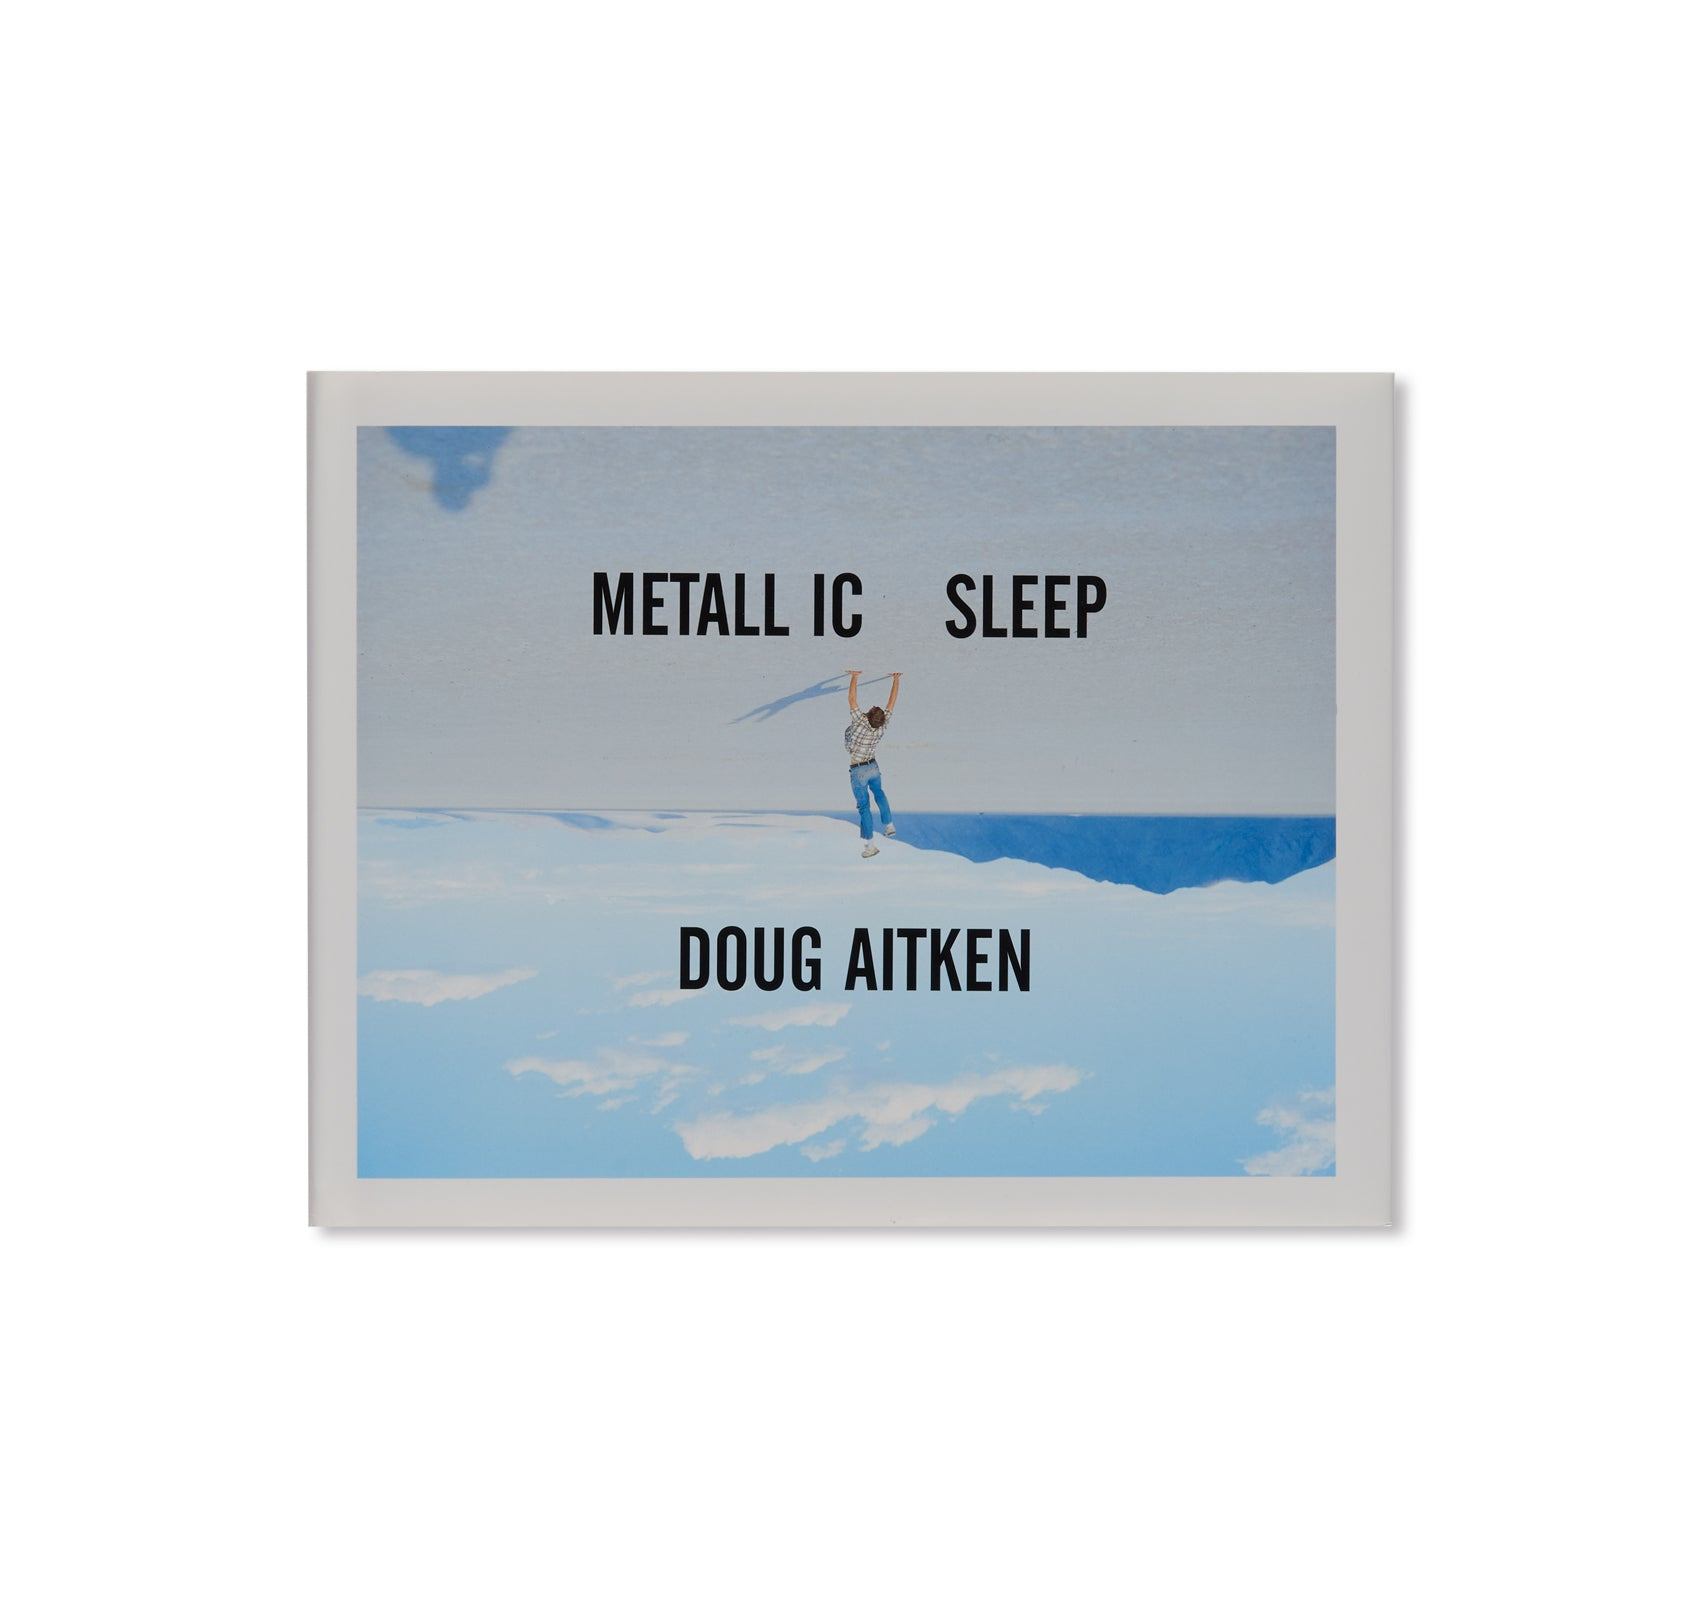 METALLIC SLEEP by Doug Aitken